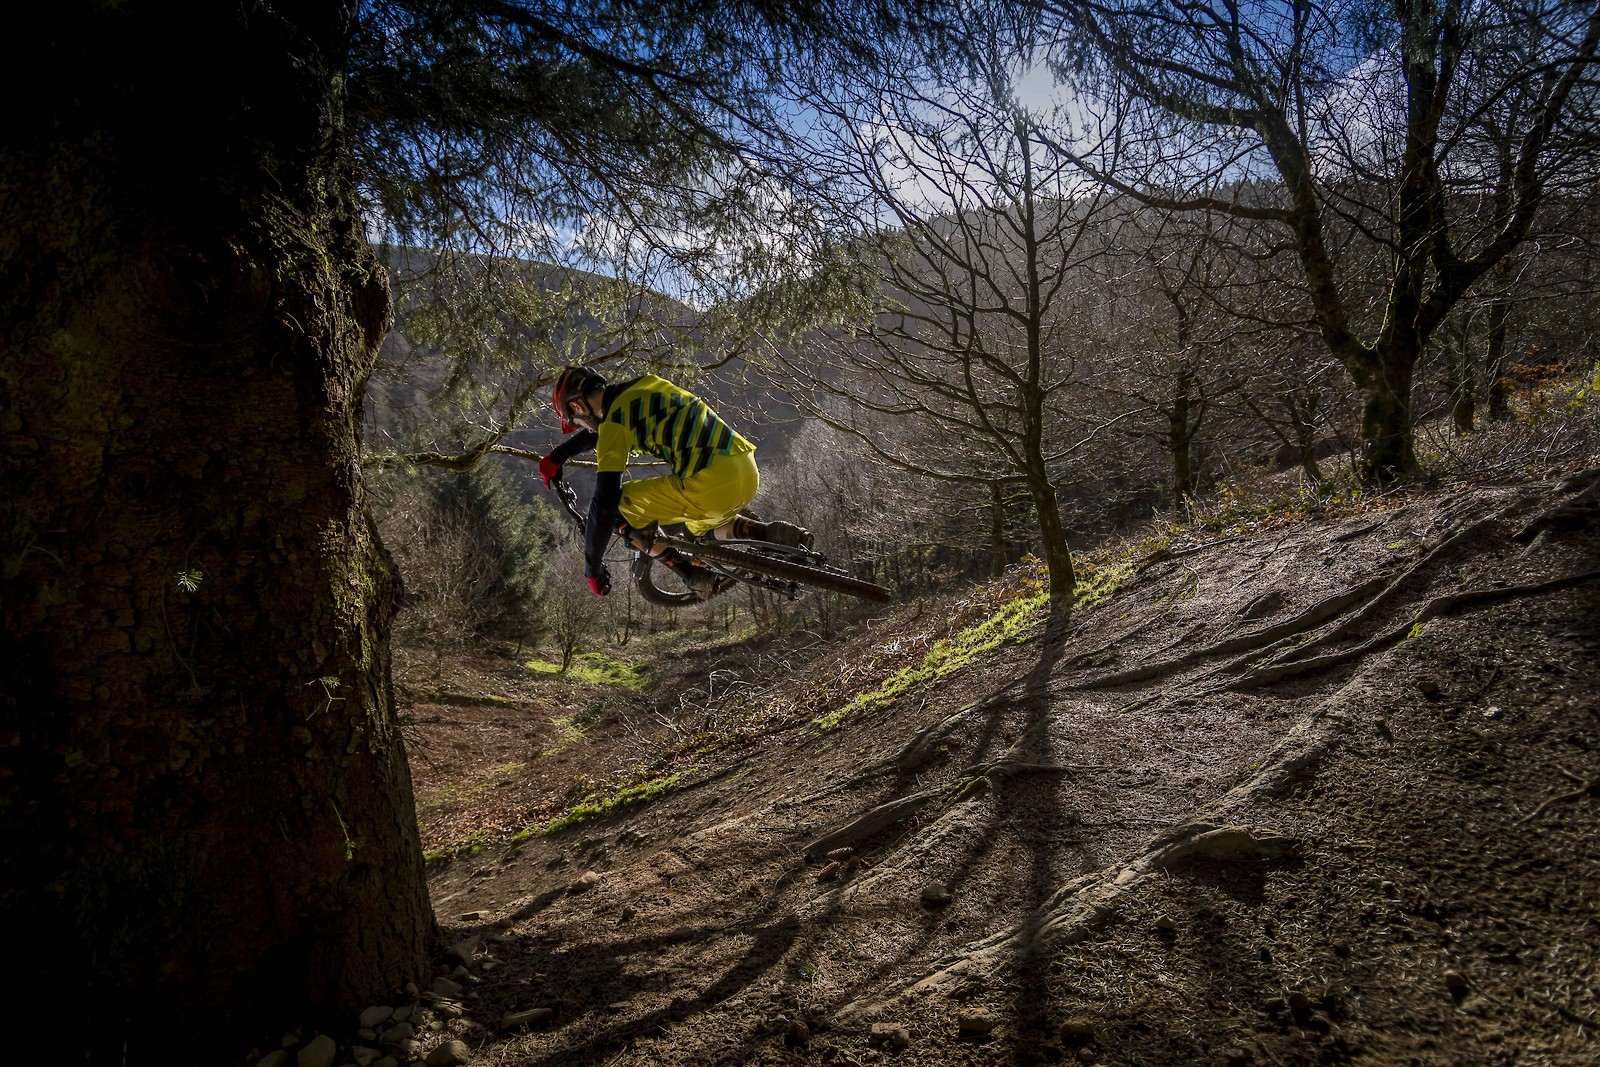 DSC0299 - robbarkerimages2017 - Mountain Biking Pictures - Vital MTB